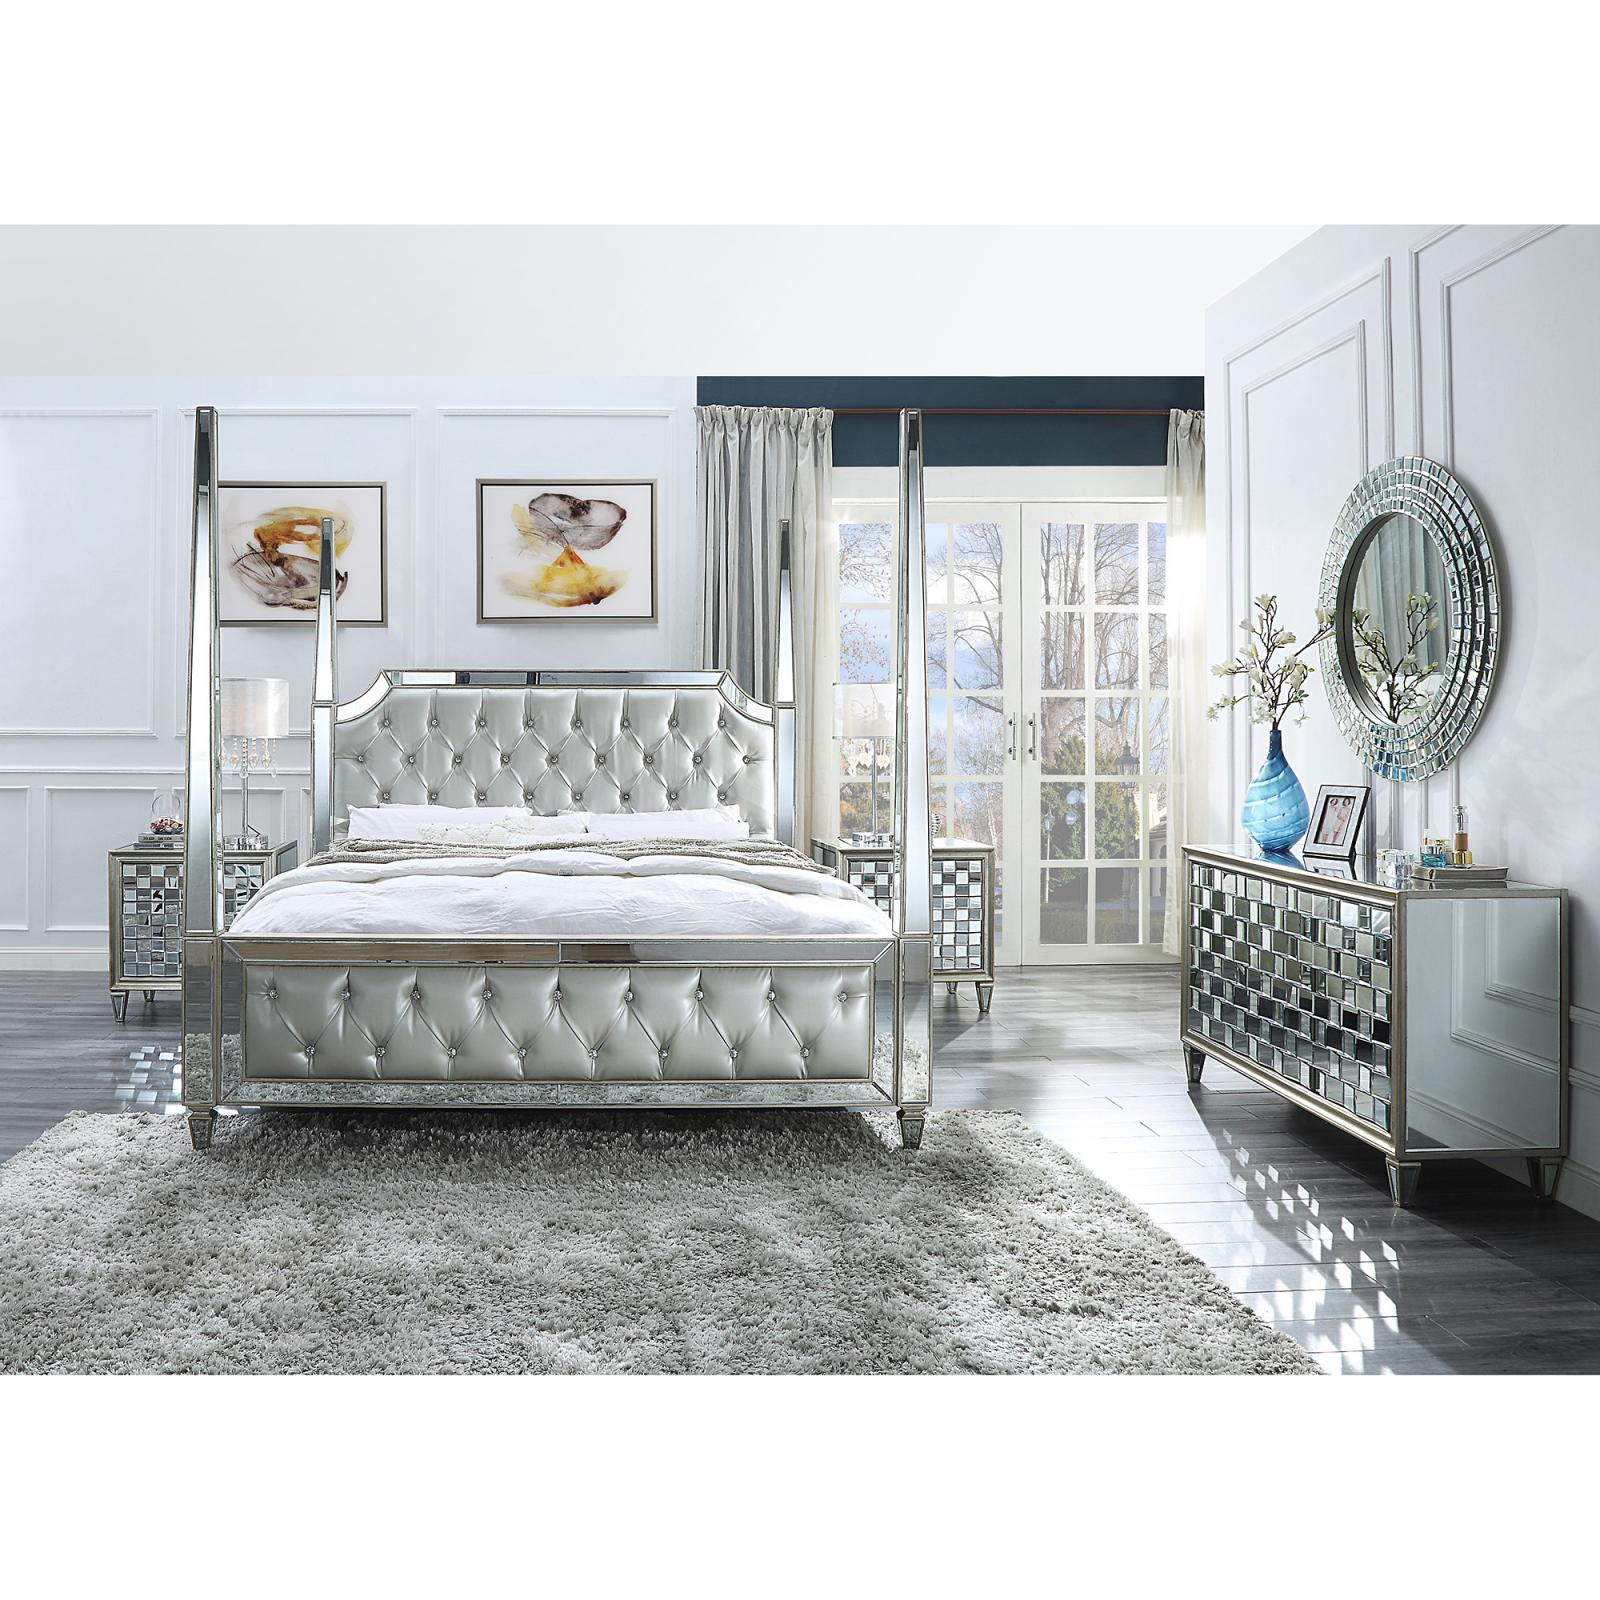 Modern Silver, Mirrored Faux Leather and Metal, Faux Leather Canopy California King Bedroom Set 5 pcs HD-6001 by Homey Design